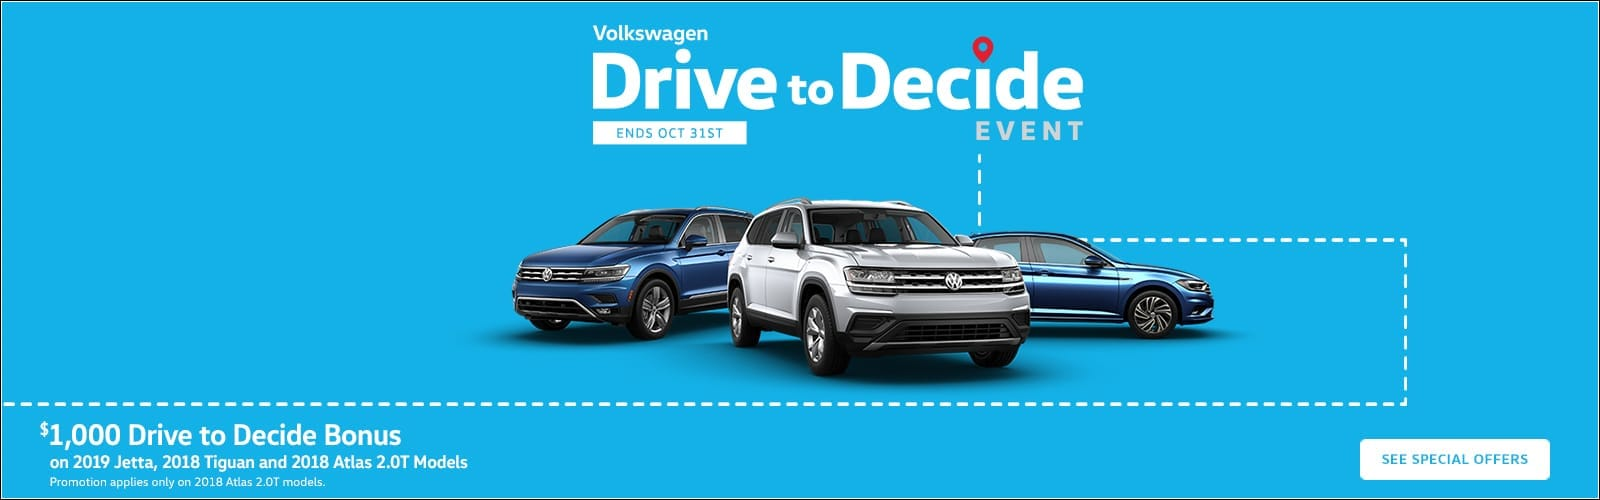 volkswagen   car dealer kennesaw serving marietta atlanta alpharetta smyrna canton